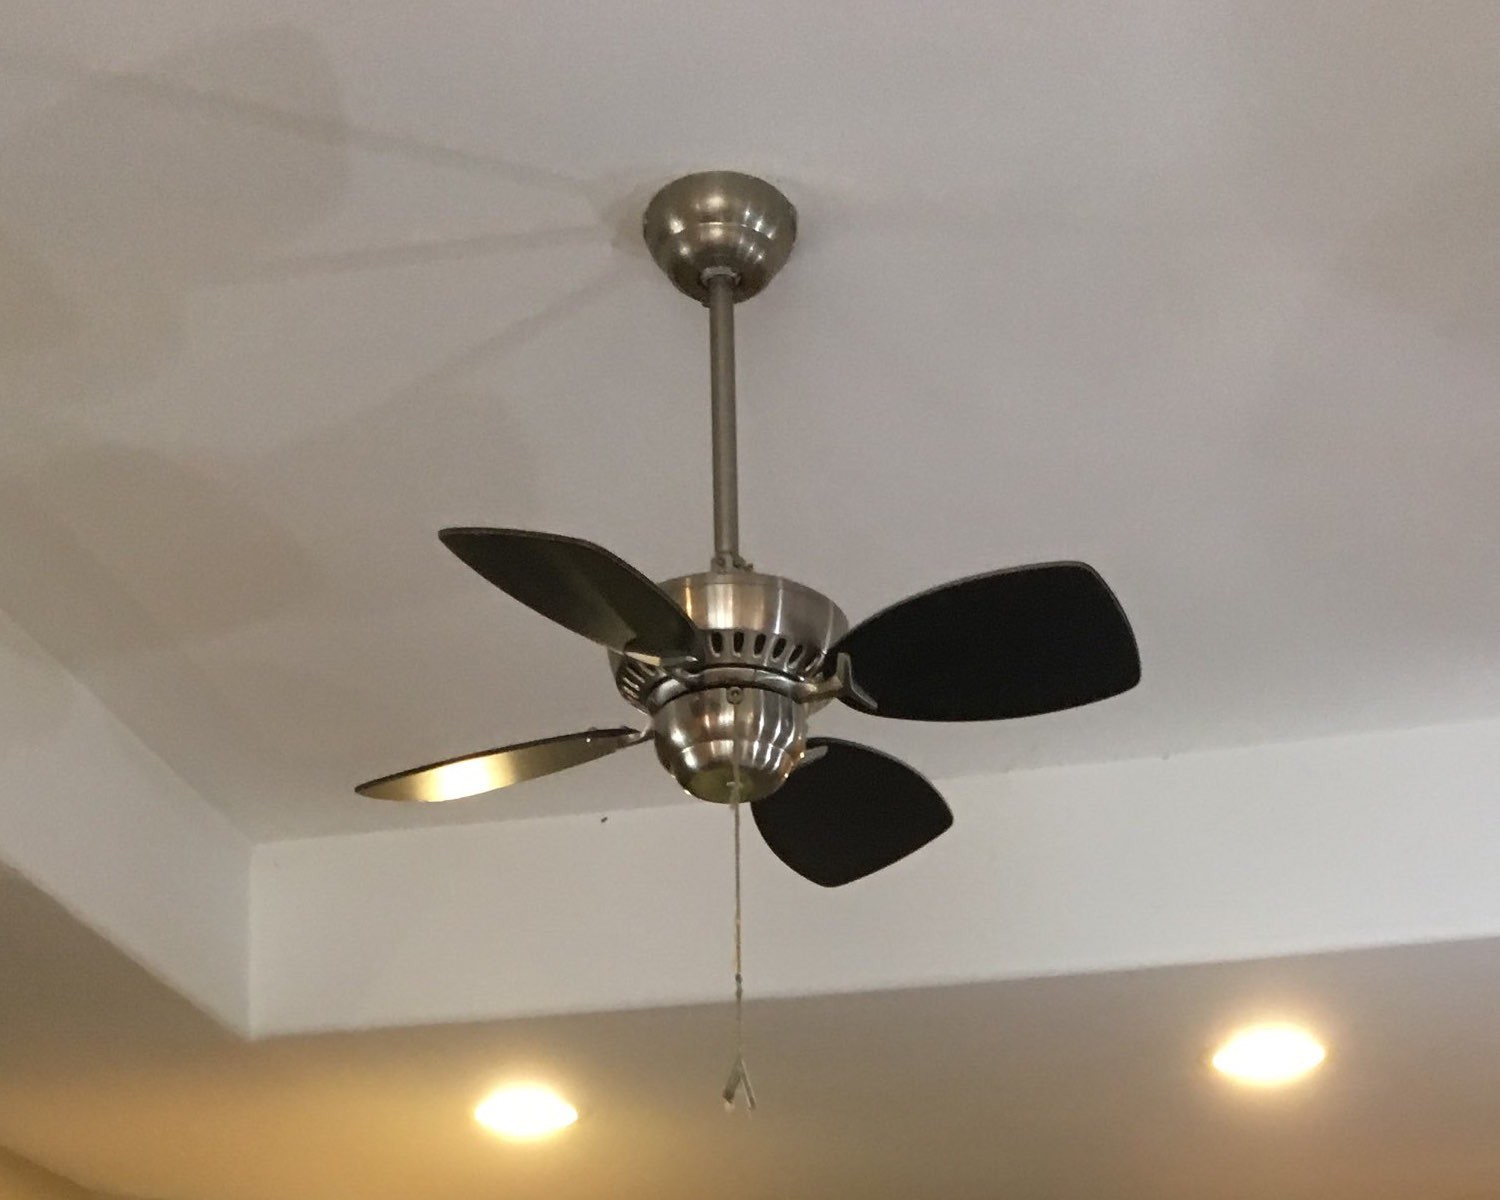 medium resolution of 7 things you may not know about ceiling fans